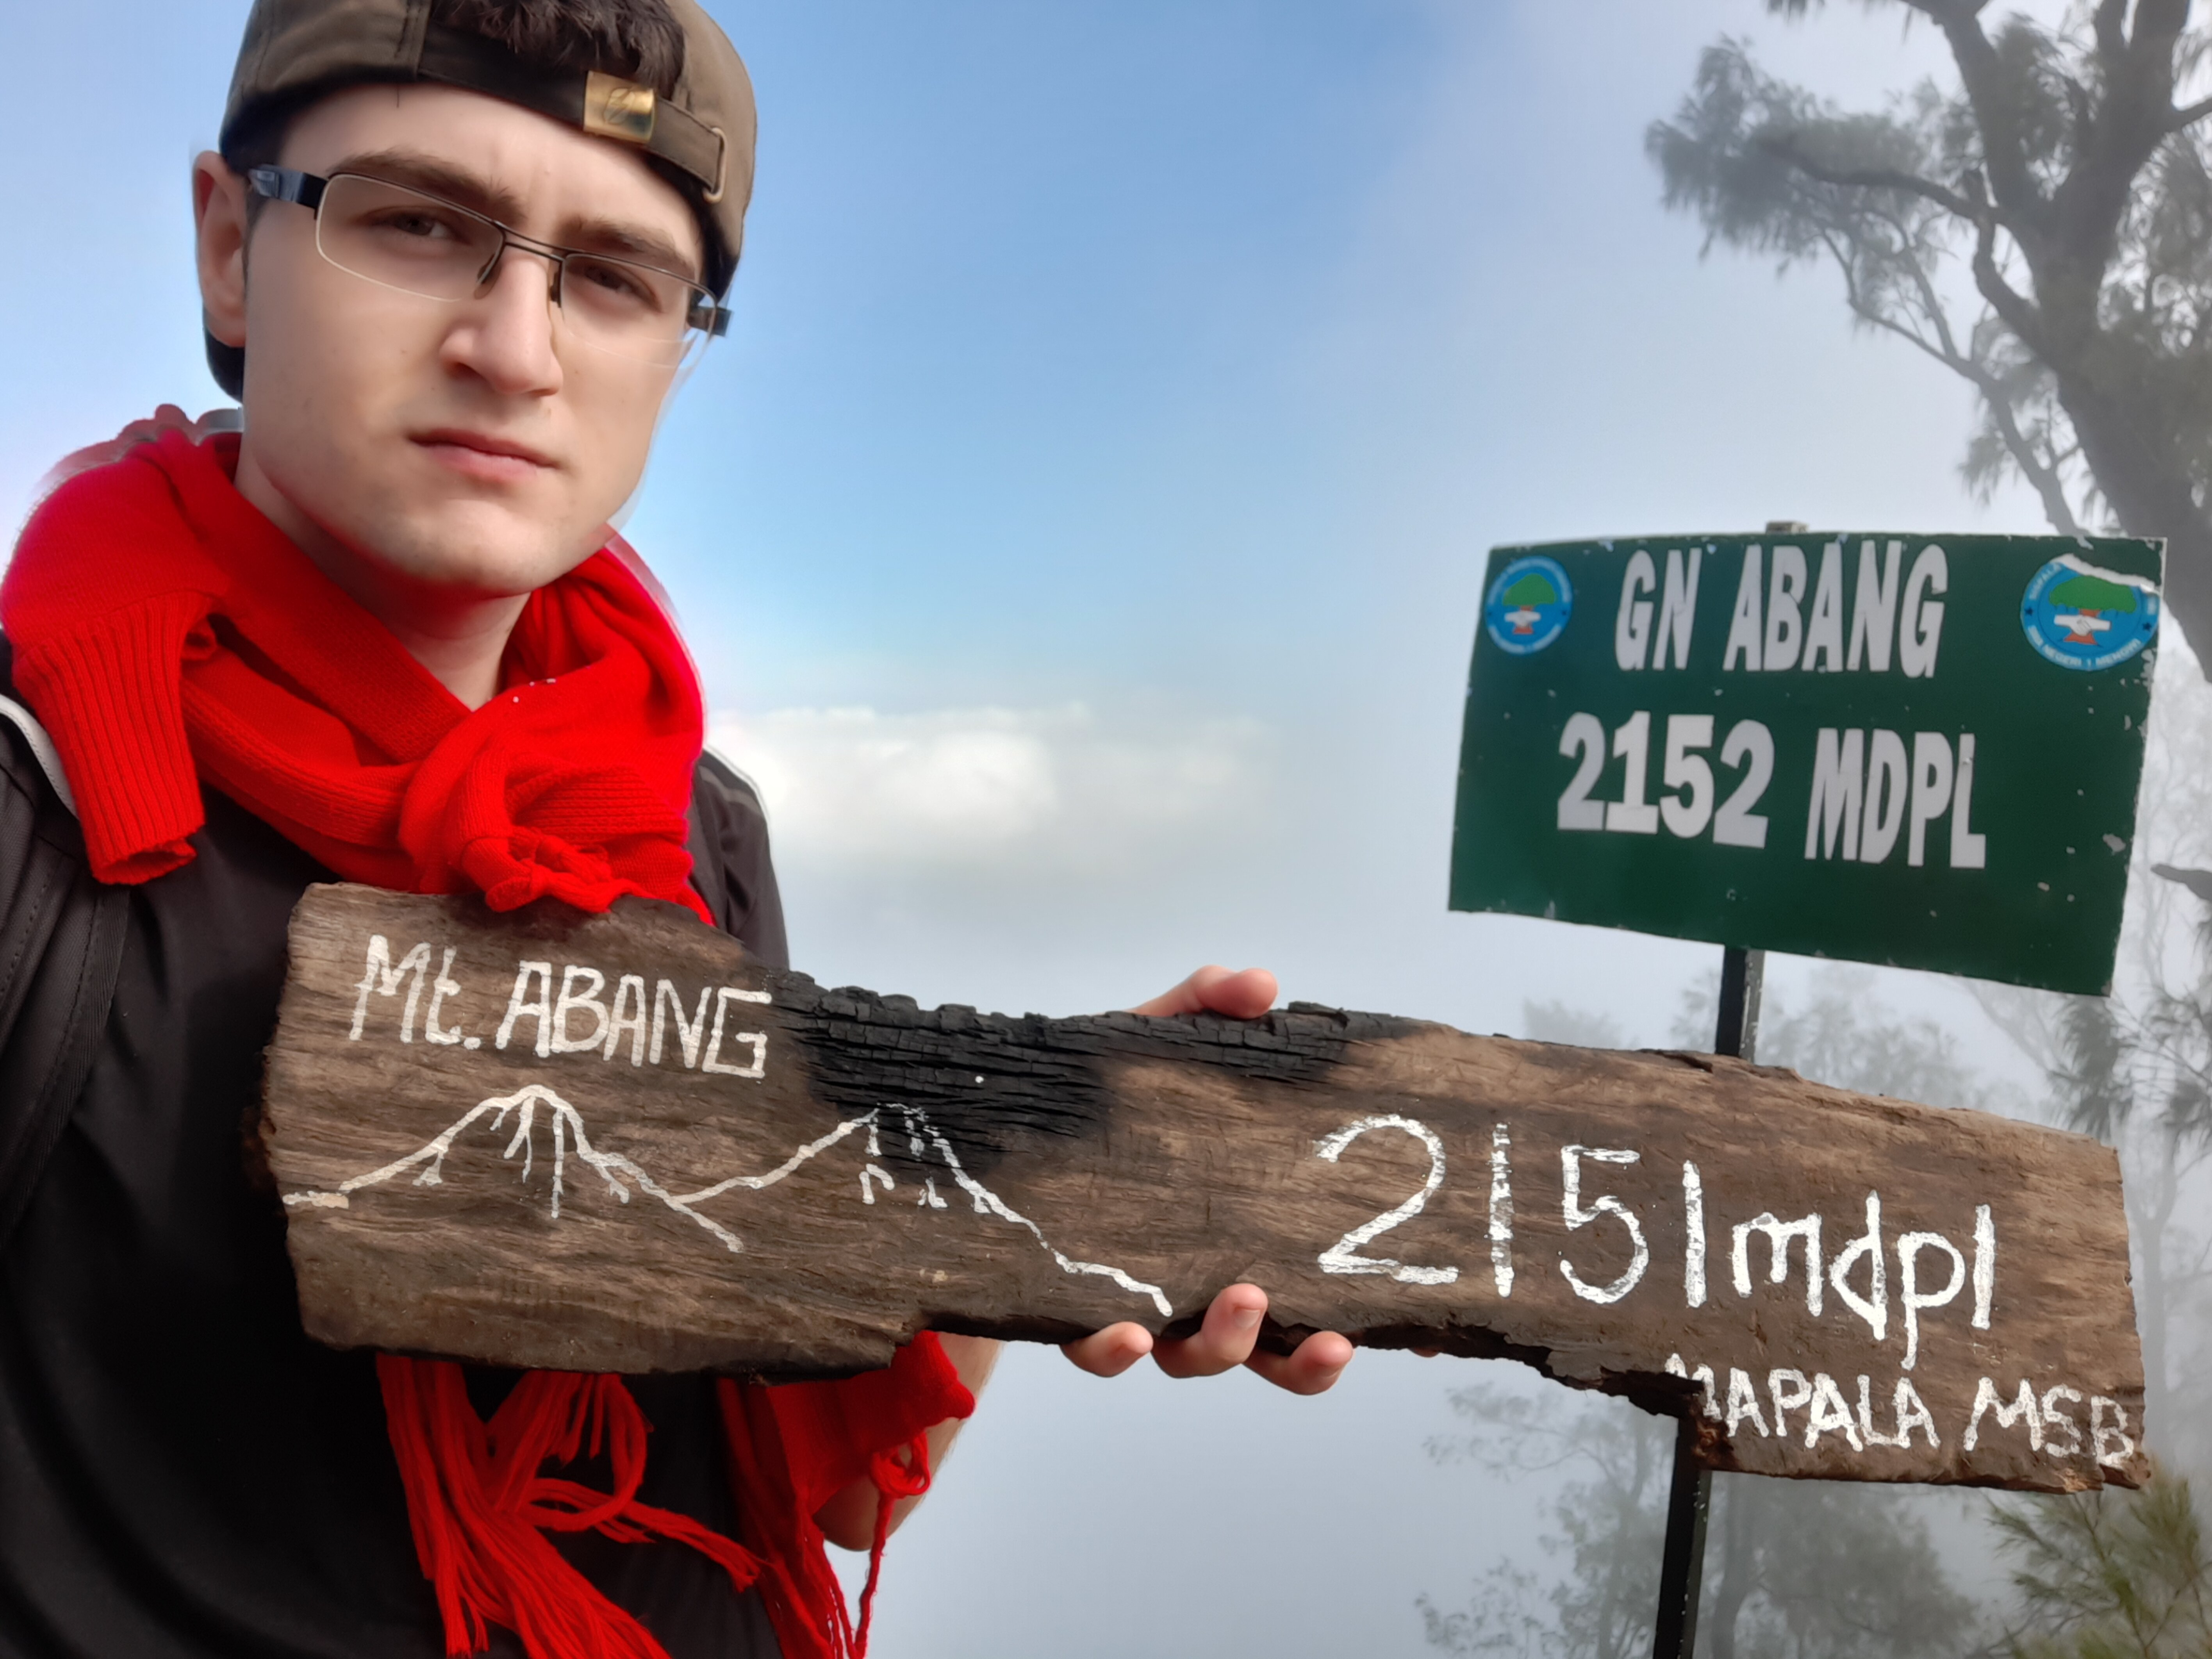 At the summit of Mt. Abang, 2151m above sea level.